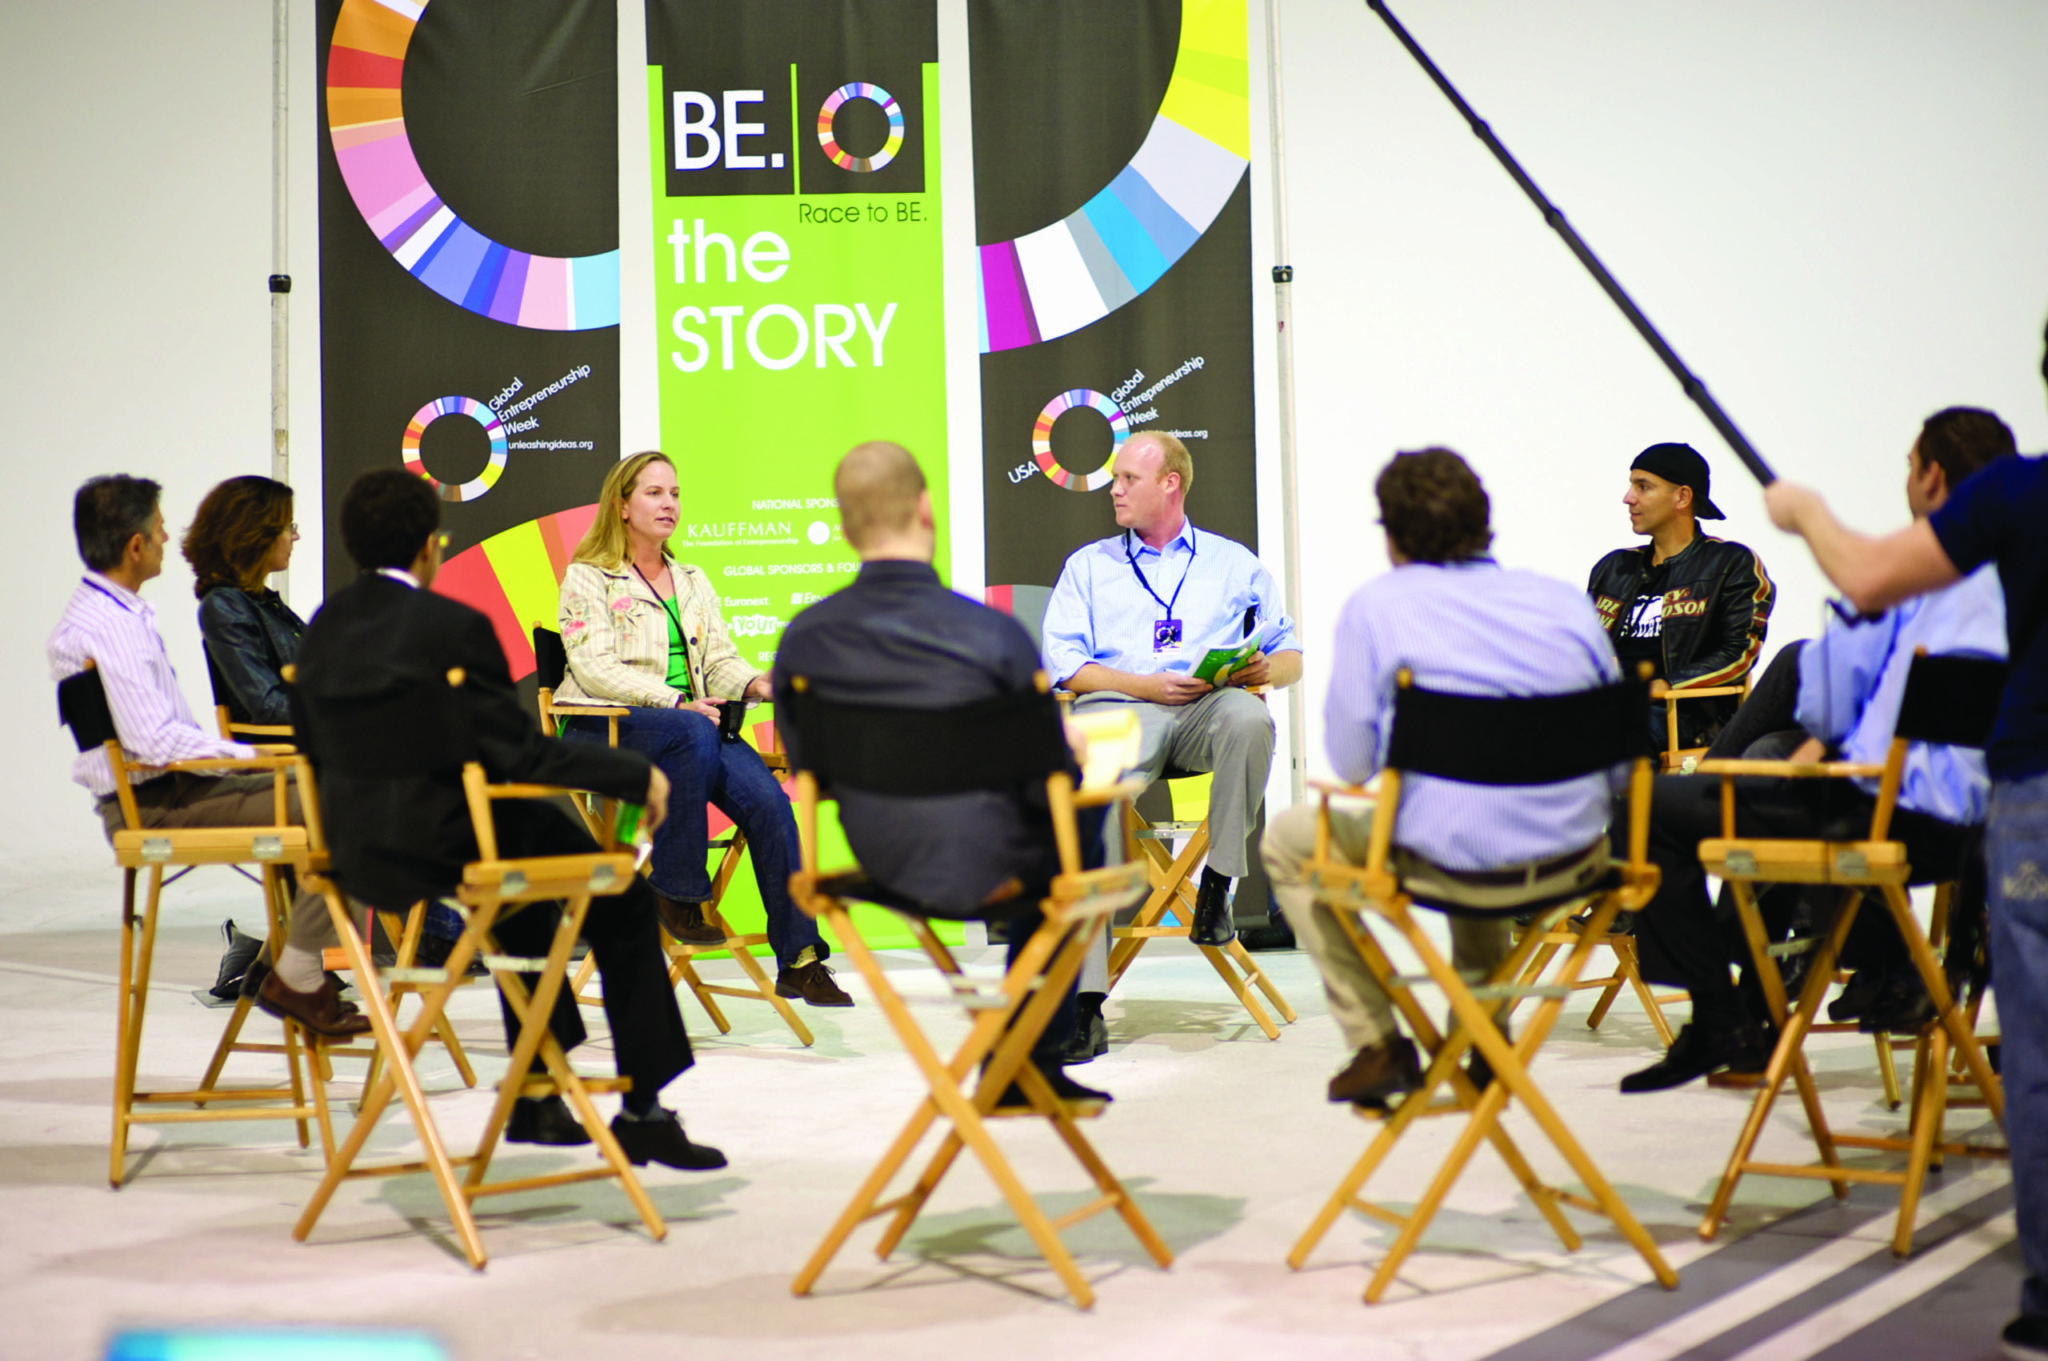 People sitting in a circle at a corporate event